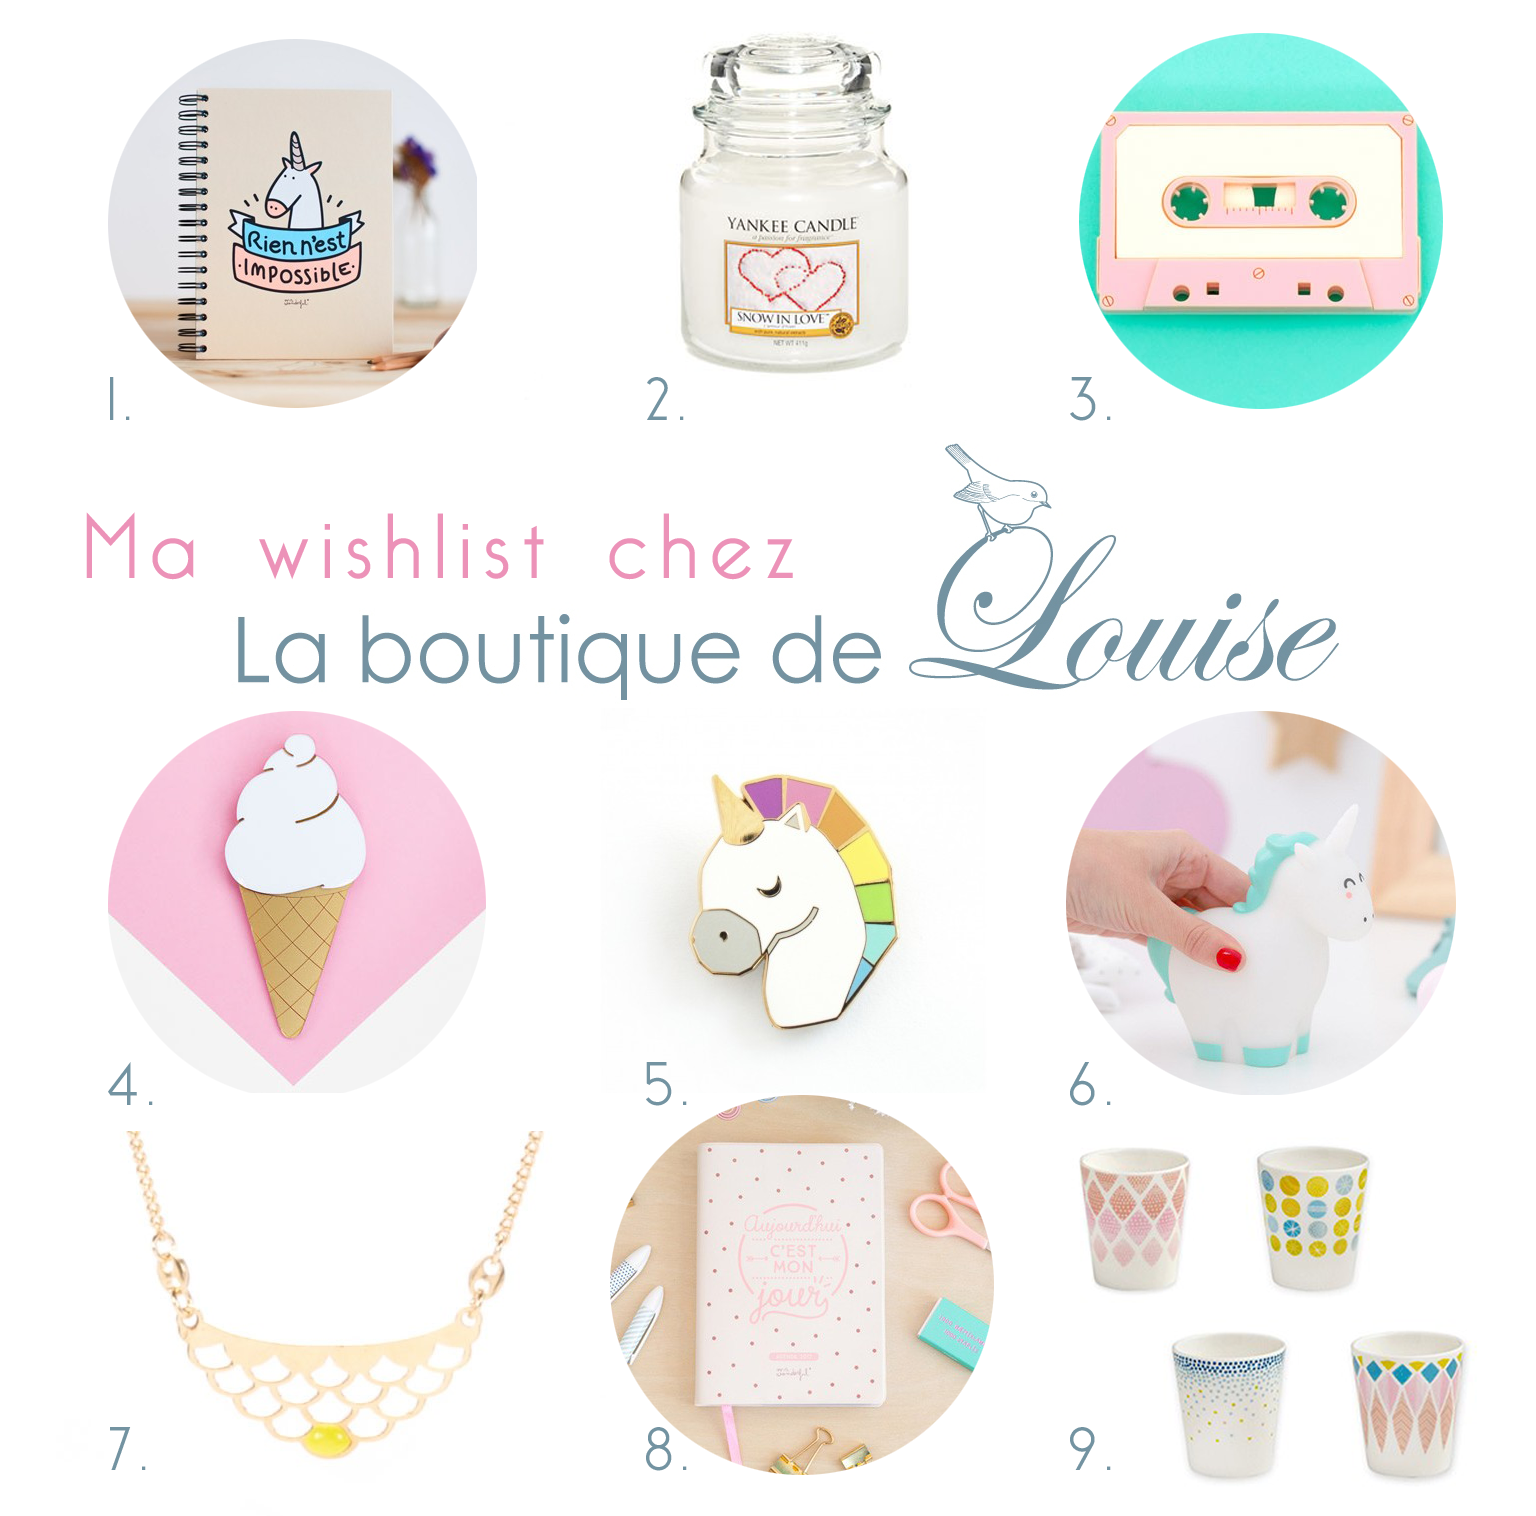 La boutique de Louise